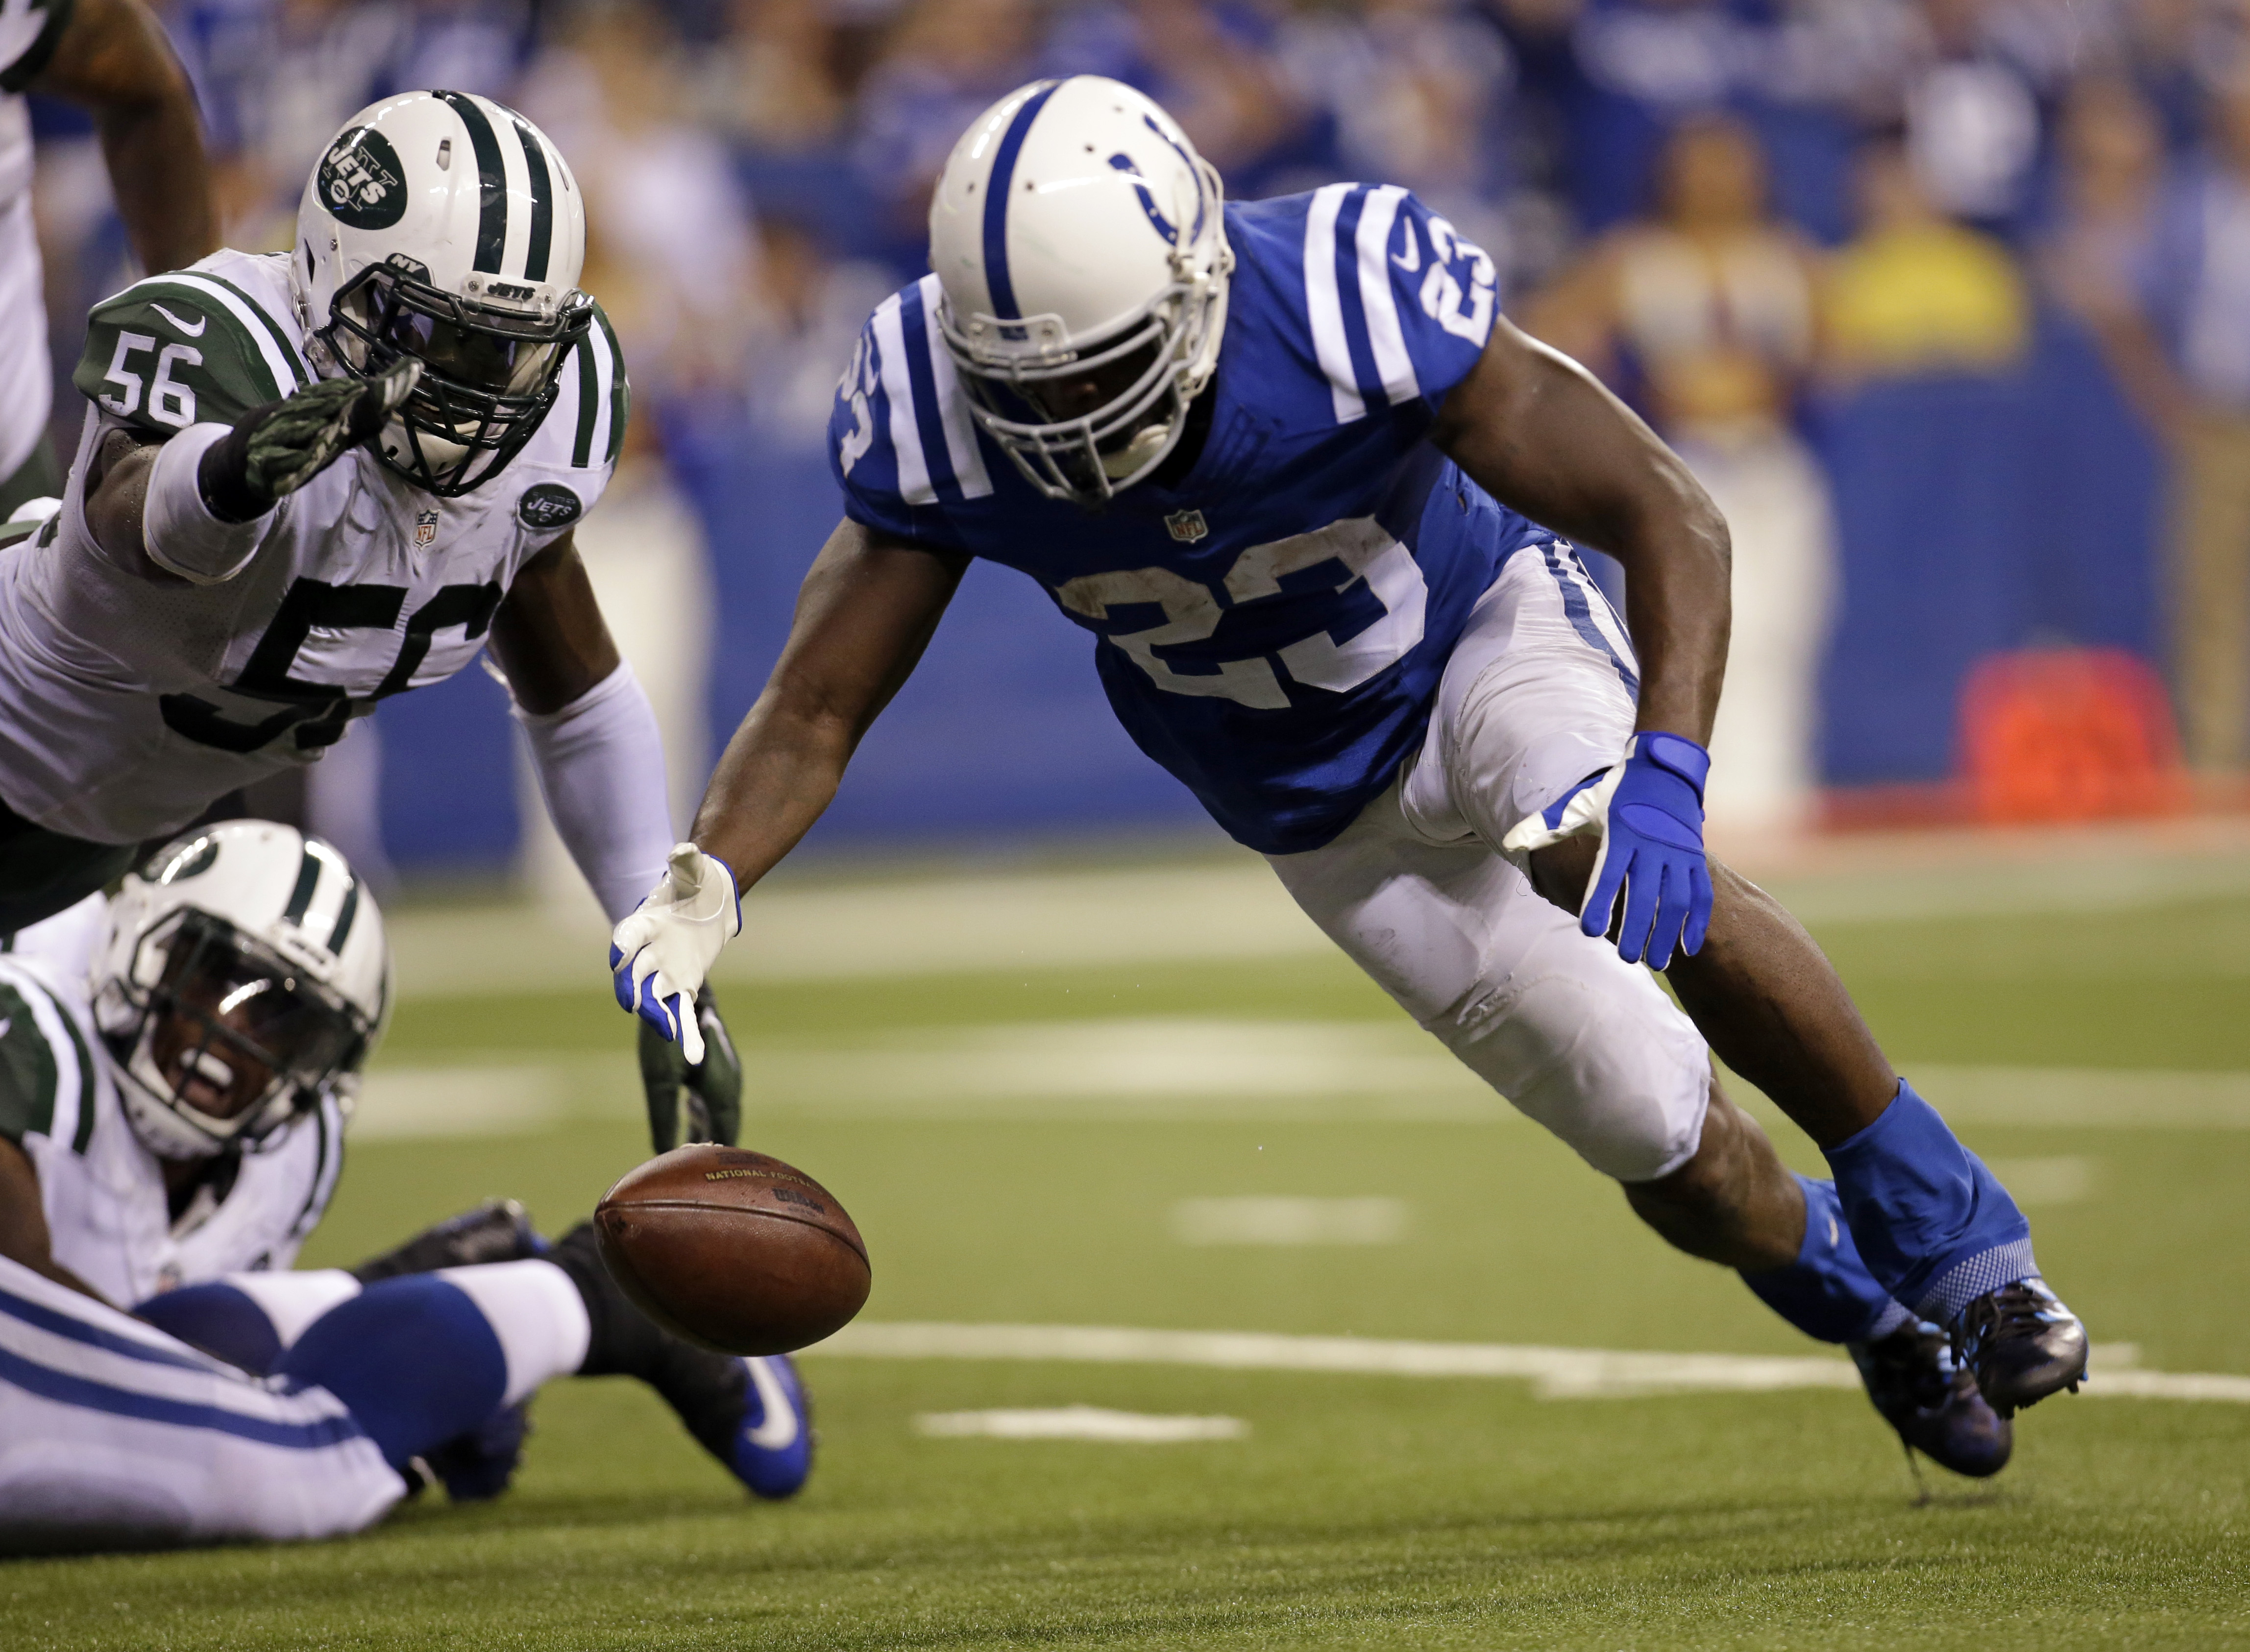 Indianapolis Colts running back Frank Gore (23) fumbles the ball on the one-yard line in front of New York Jets inside linebacker Demario Davis (56) during the second half of an NFL football game in Indianapolis, Monday, Sept. 21, 2015. (AP Photo/AJ Mast)